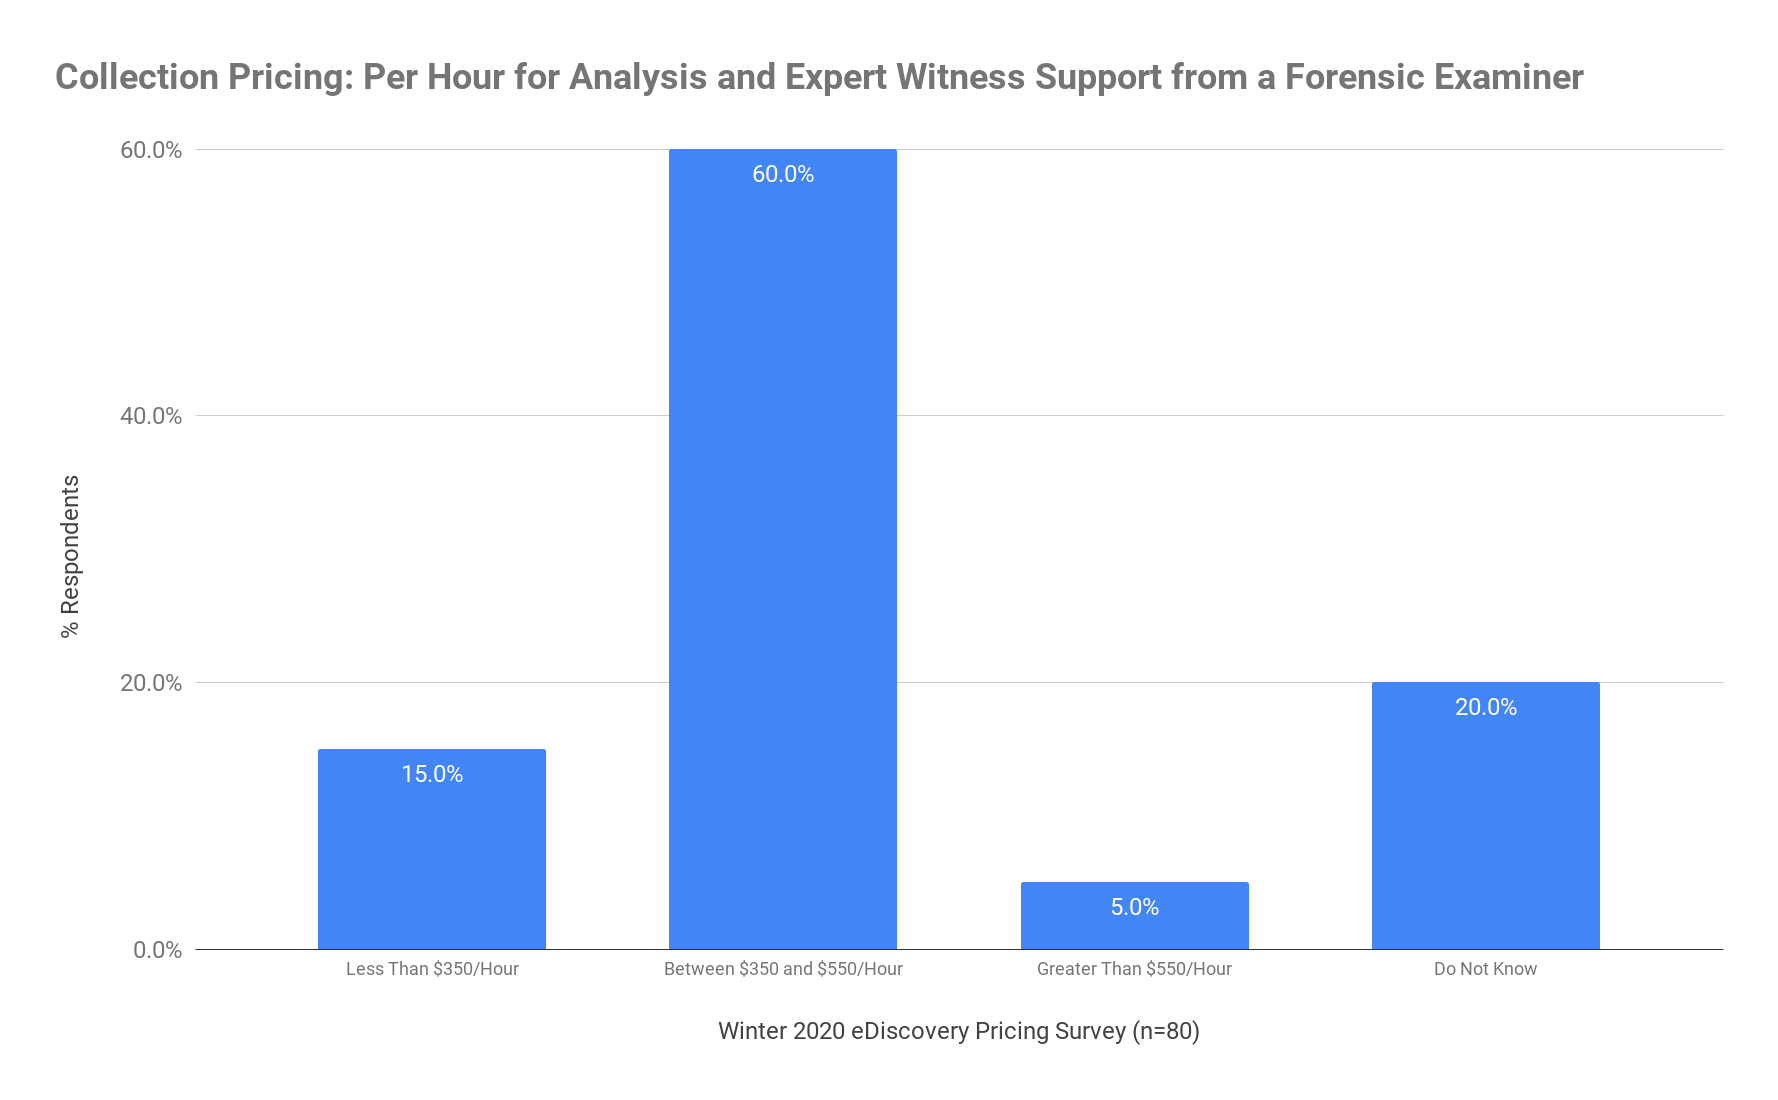 Collection Pricing - Per Hour for Analysis and Expert Witness Support from a Forensic Examiner - Winter 2020